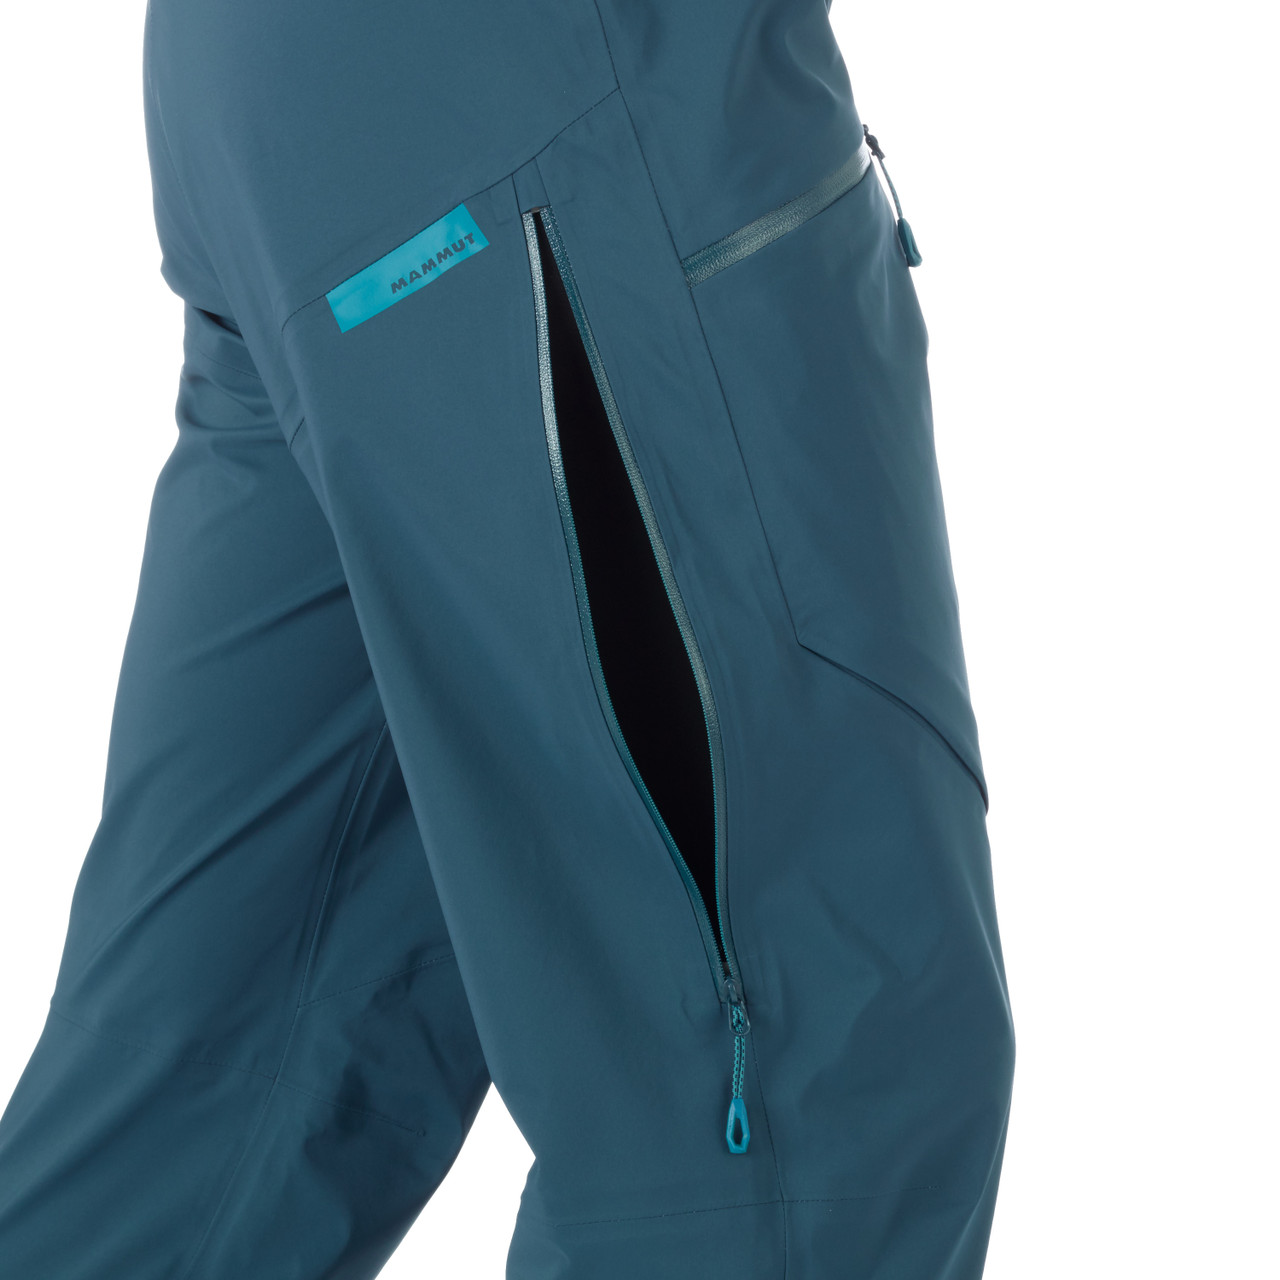 Mammut Haldigrat HS Pants Men - Wing Teal